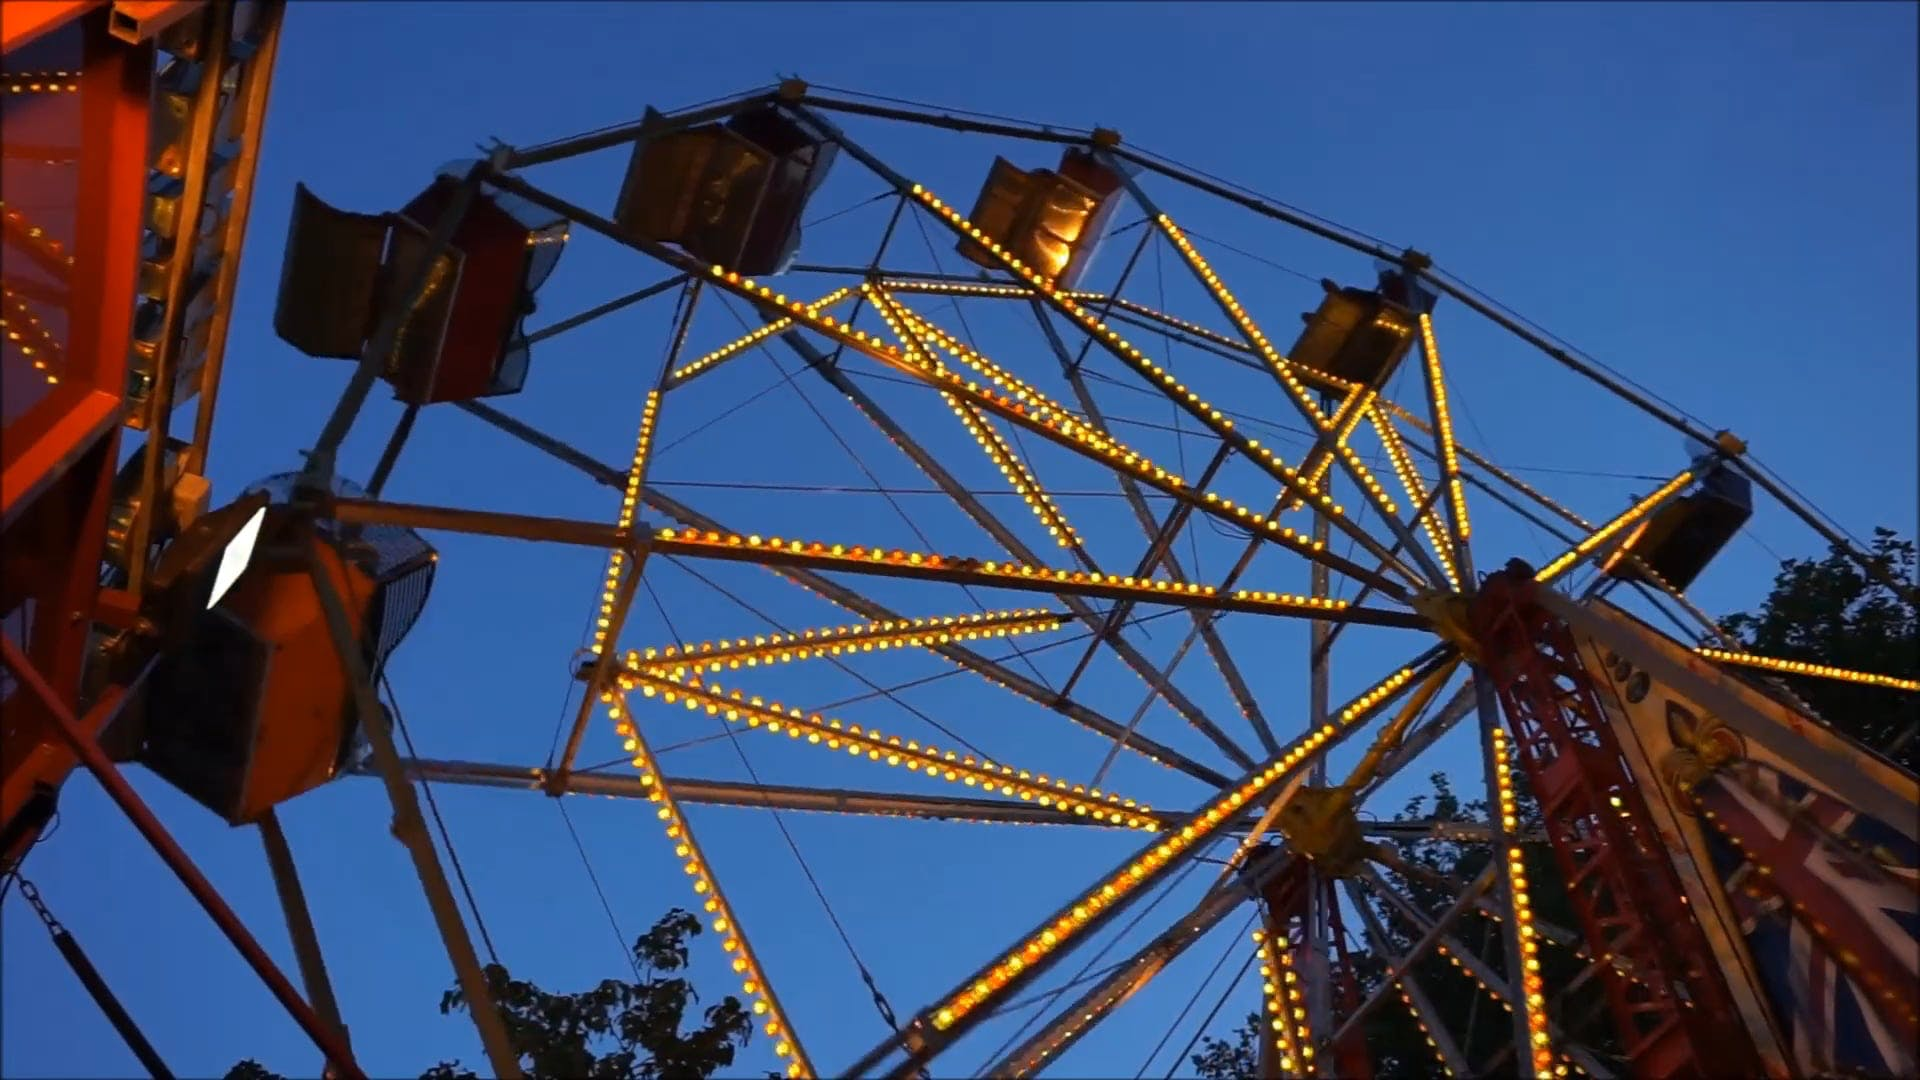 Low Angle Shot of A Ferris Wheel